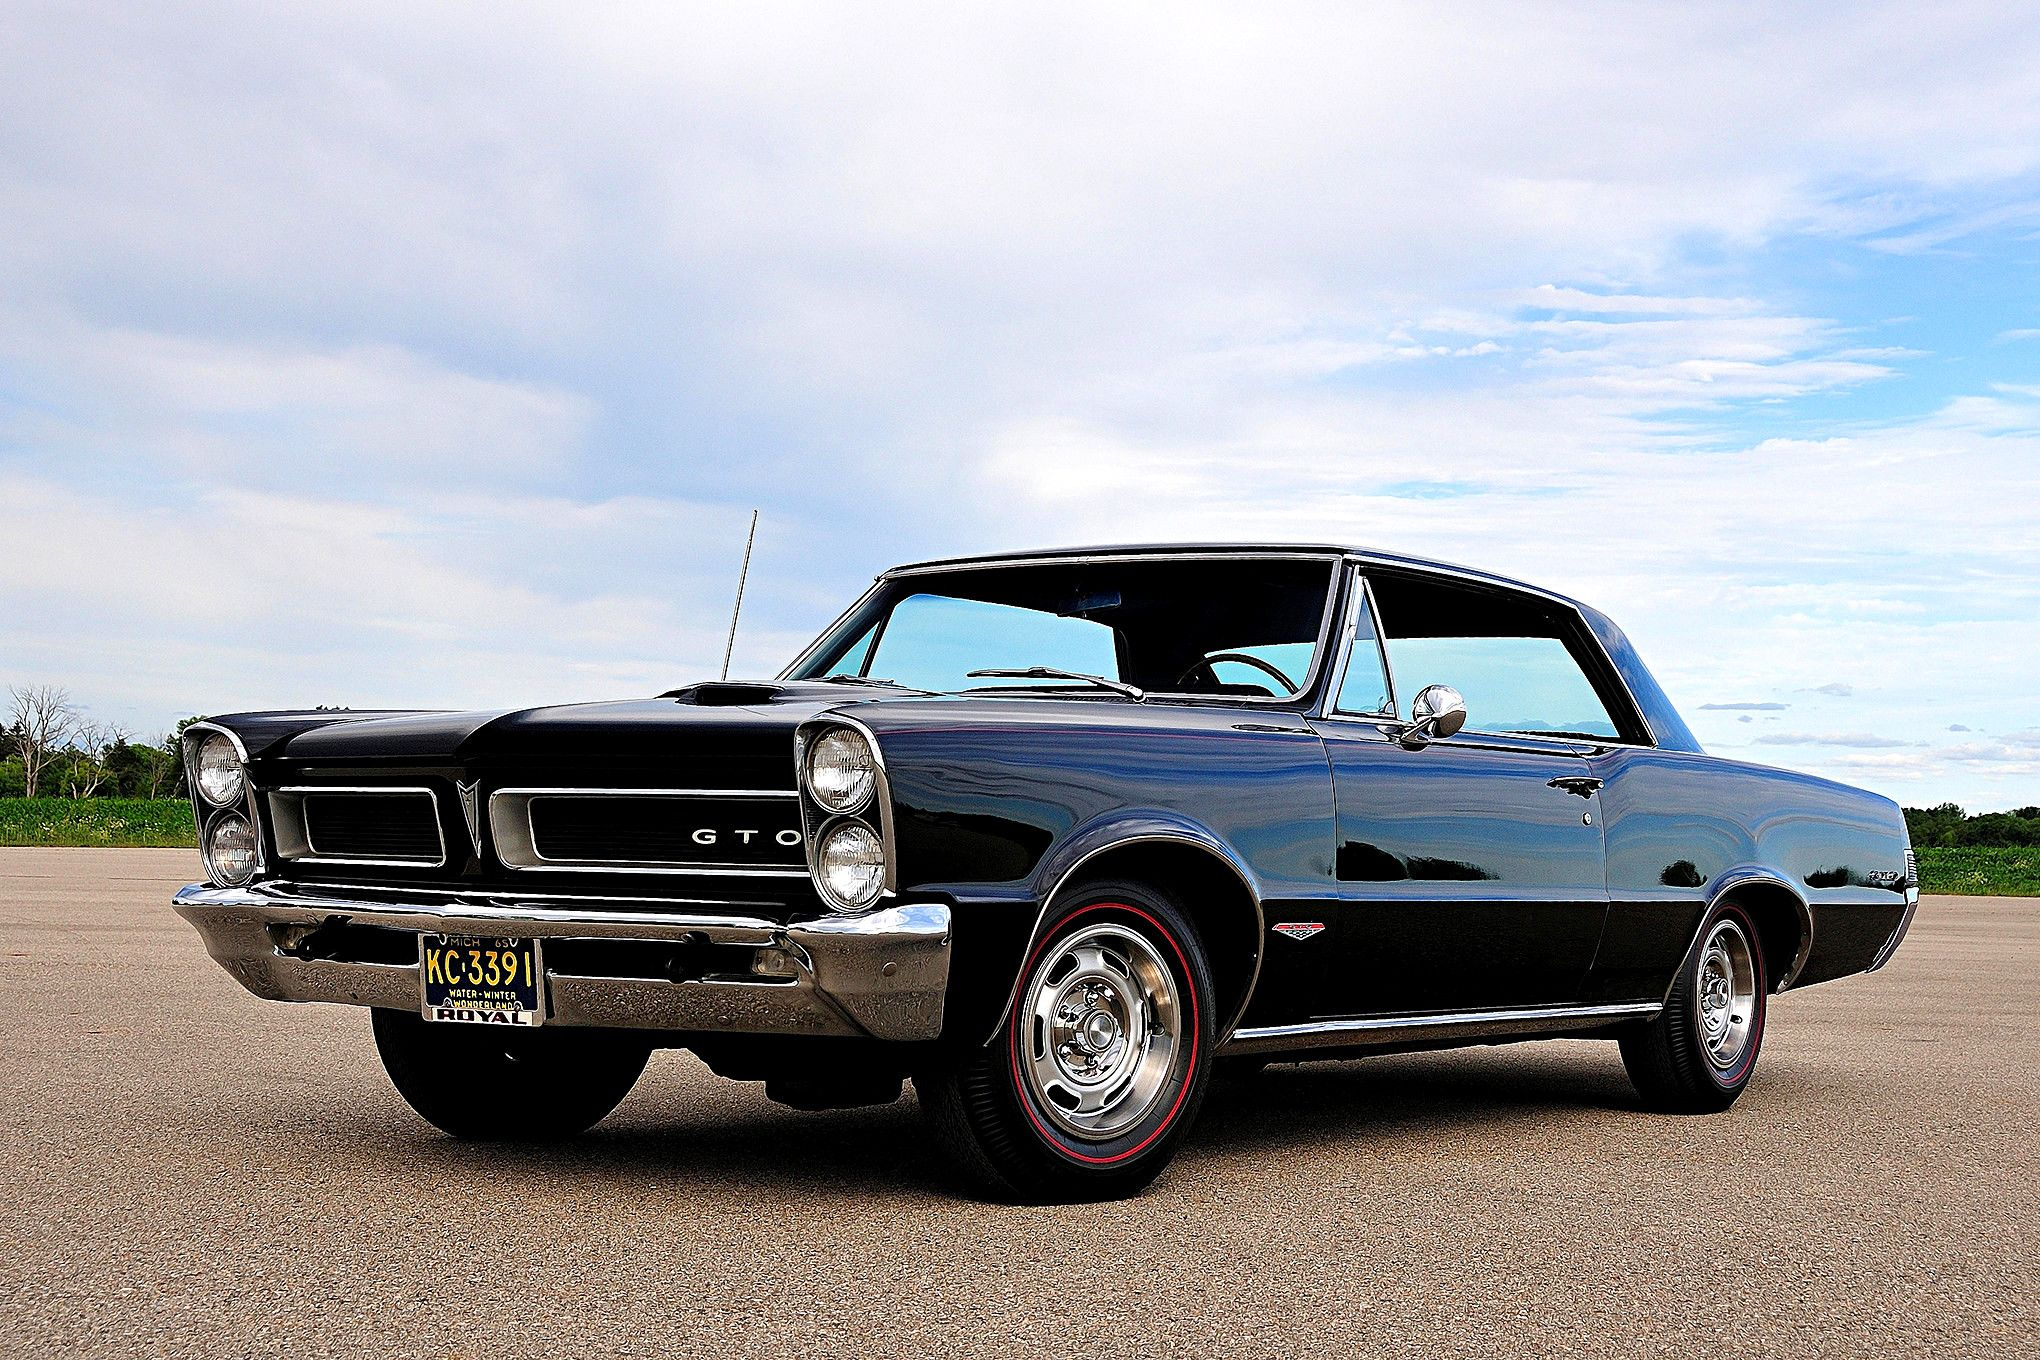 Lovely 1965 Pontiac GTO This 1965 Pontiac GTO Was Attending NHRA Drag Race  Competitions Back In The Days. Good Looking